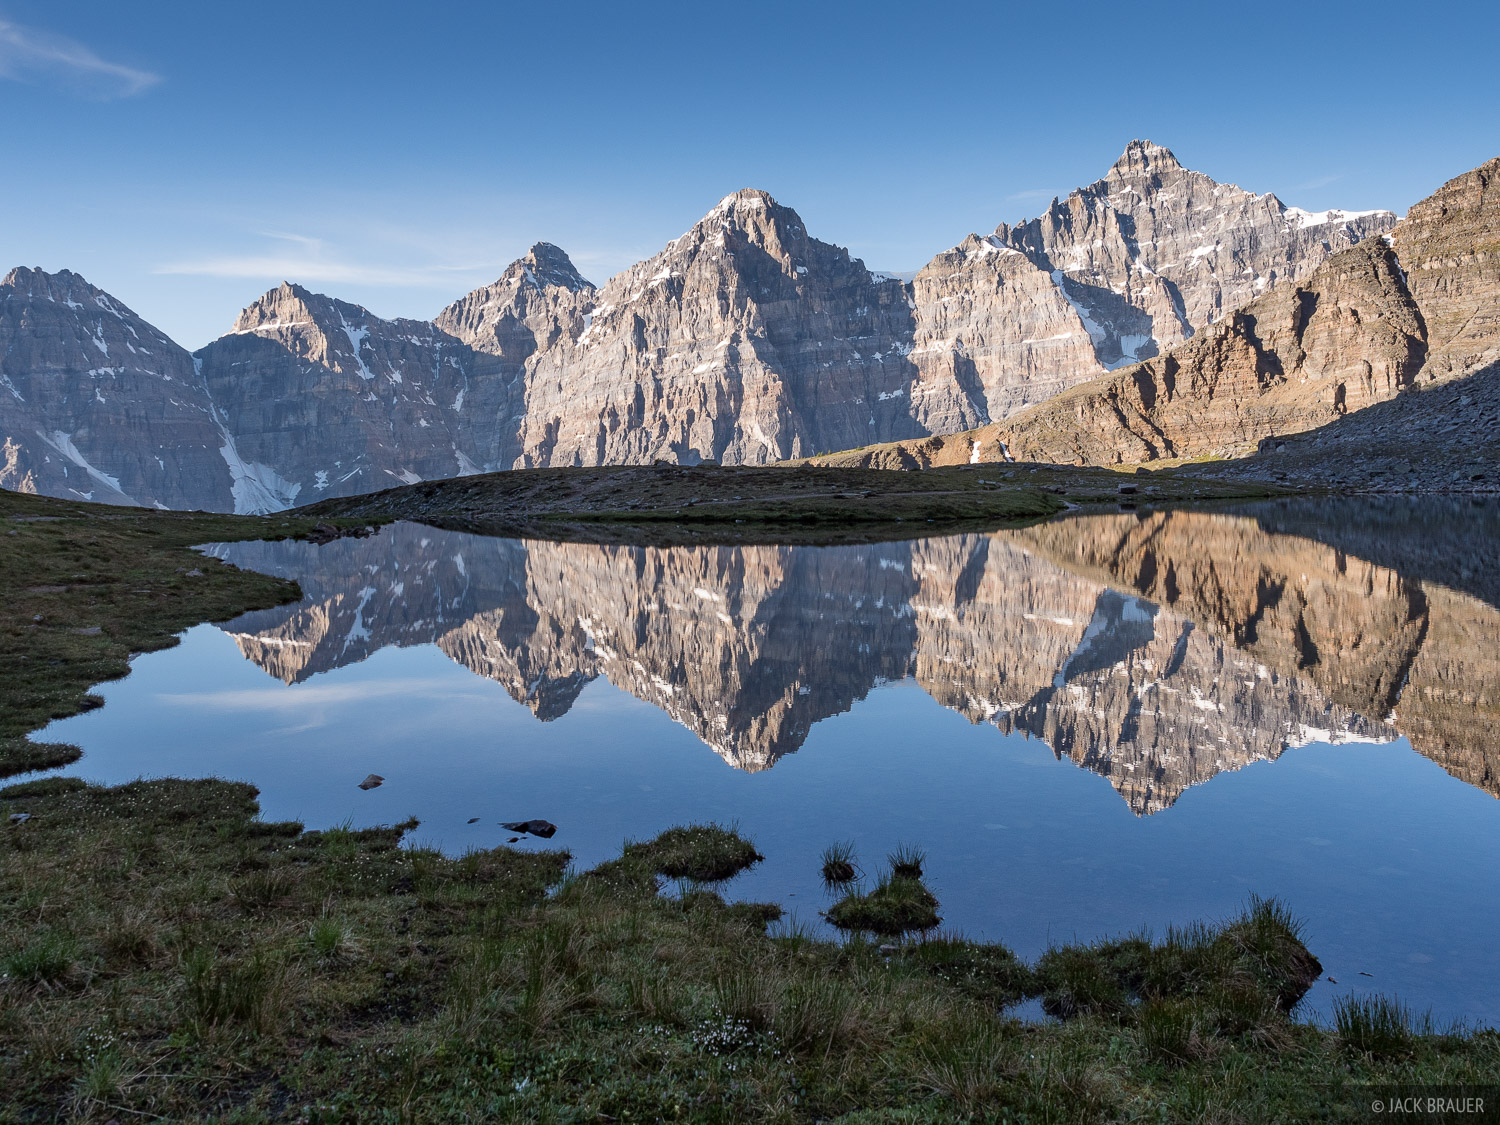 Alberta, Banff National Park, Canada, Canadian Rockies, Larch Valley, Mount Temple, Wenkchemna Peaks, photo